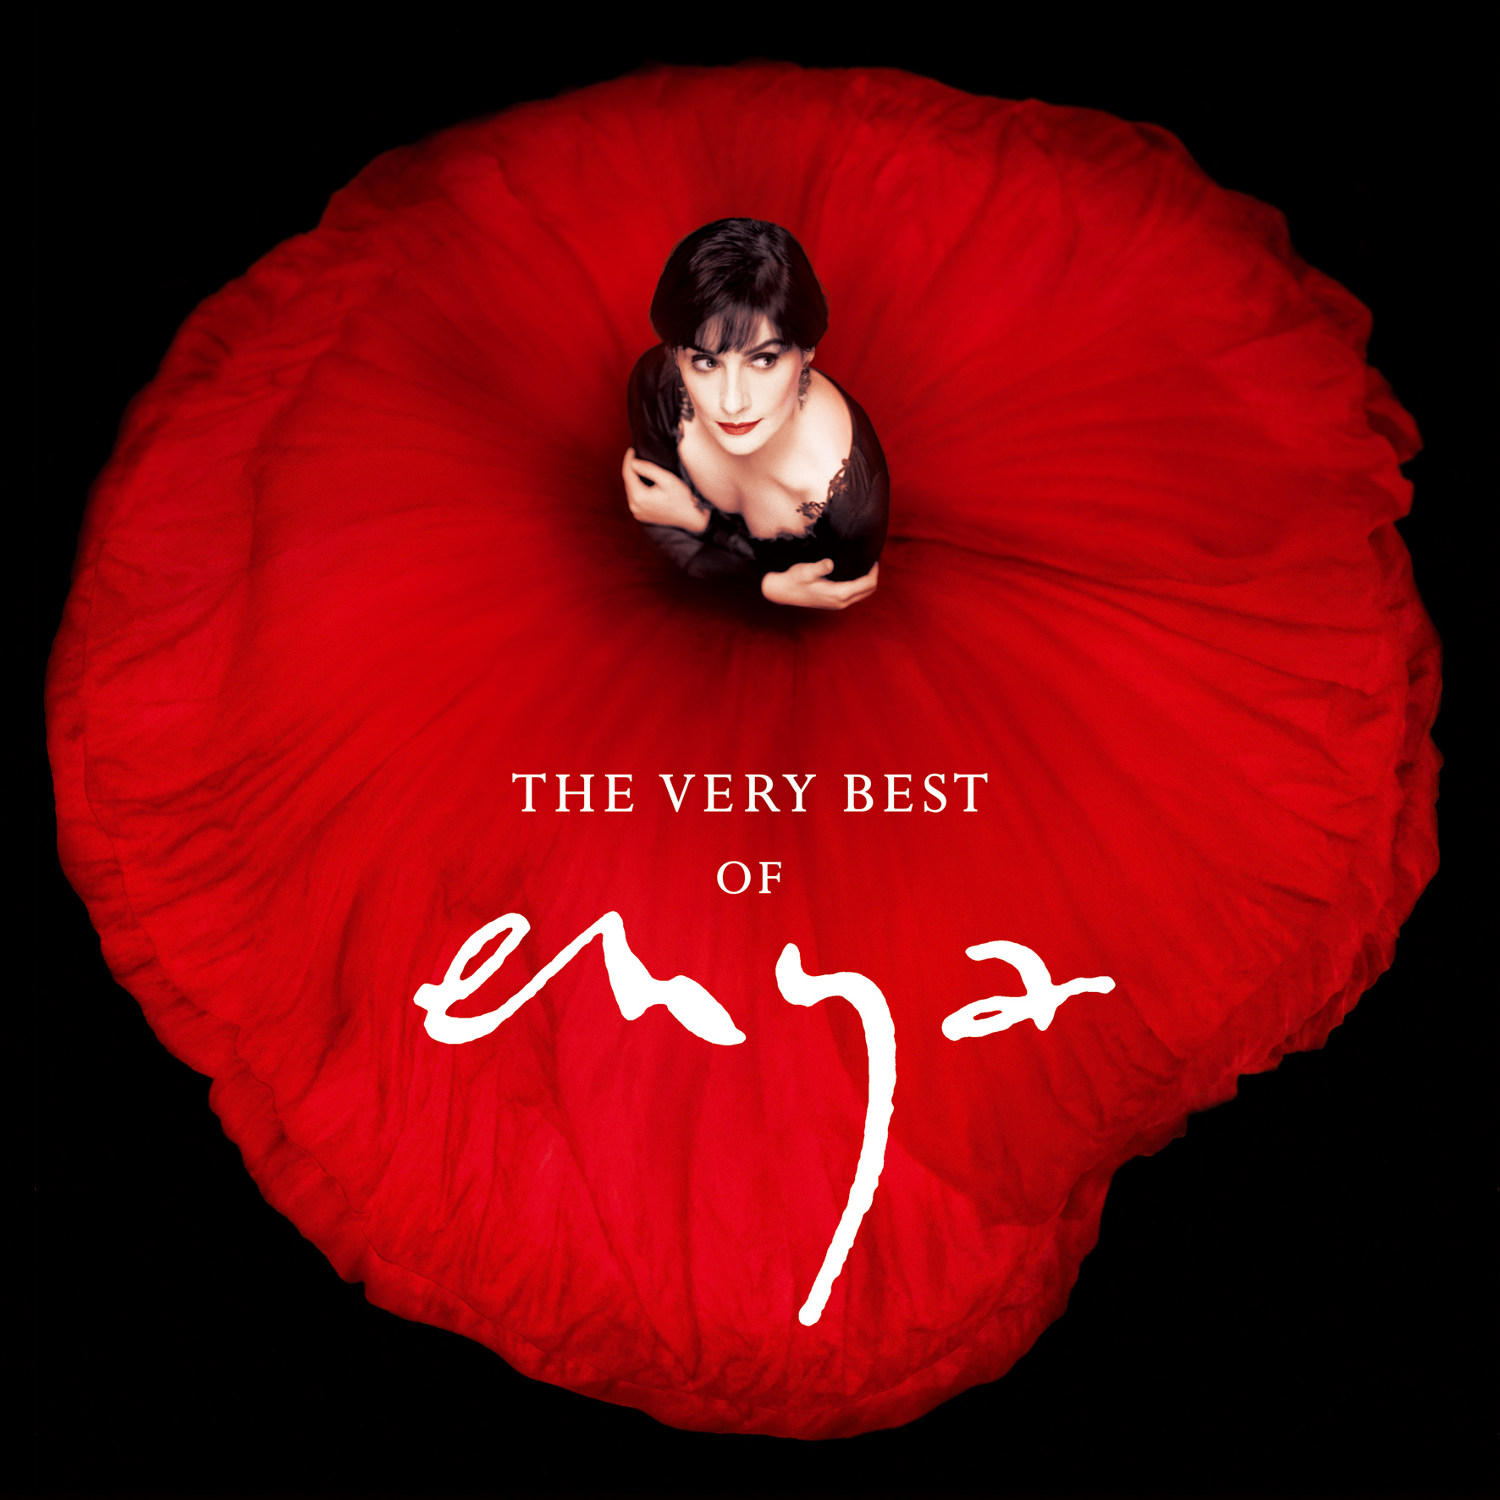 http://4.bp.blogspot.com/_apCSTYGKlyk/TRDpI5UpQYI/AAAAAAAAAkw/alOwOe_Y07U/s1600/The-Very-Best-of-Enya-2009-Enya-album.jpg